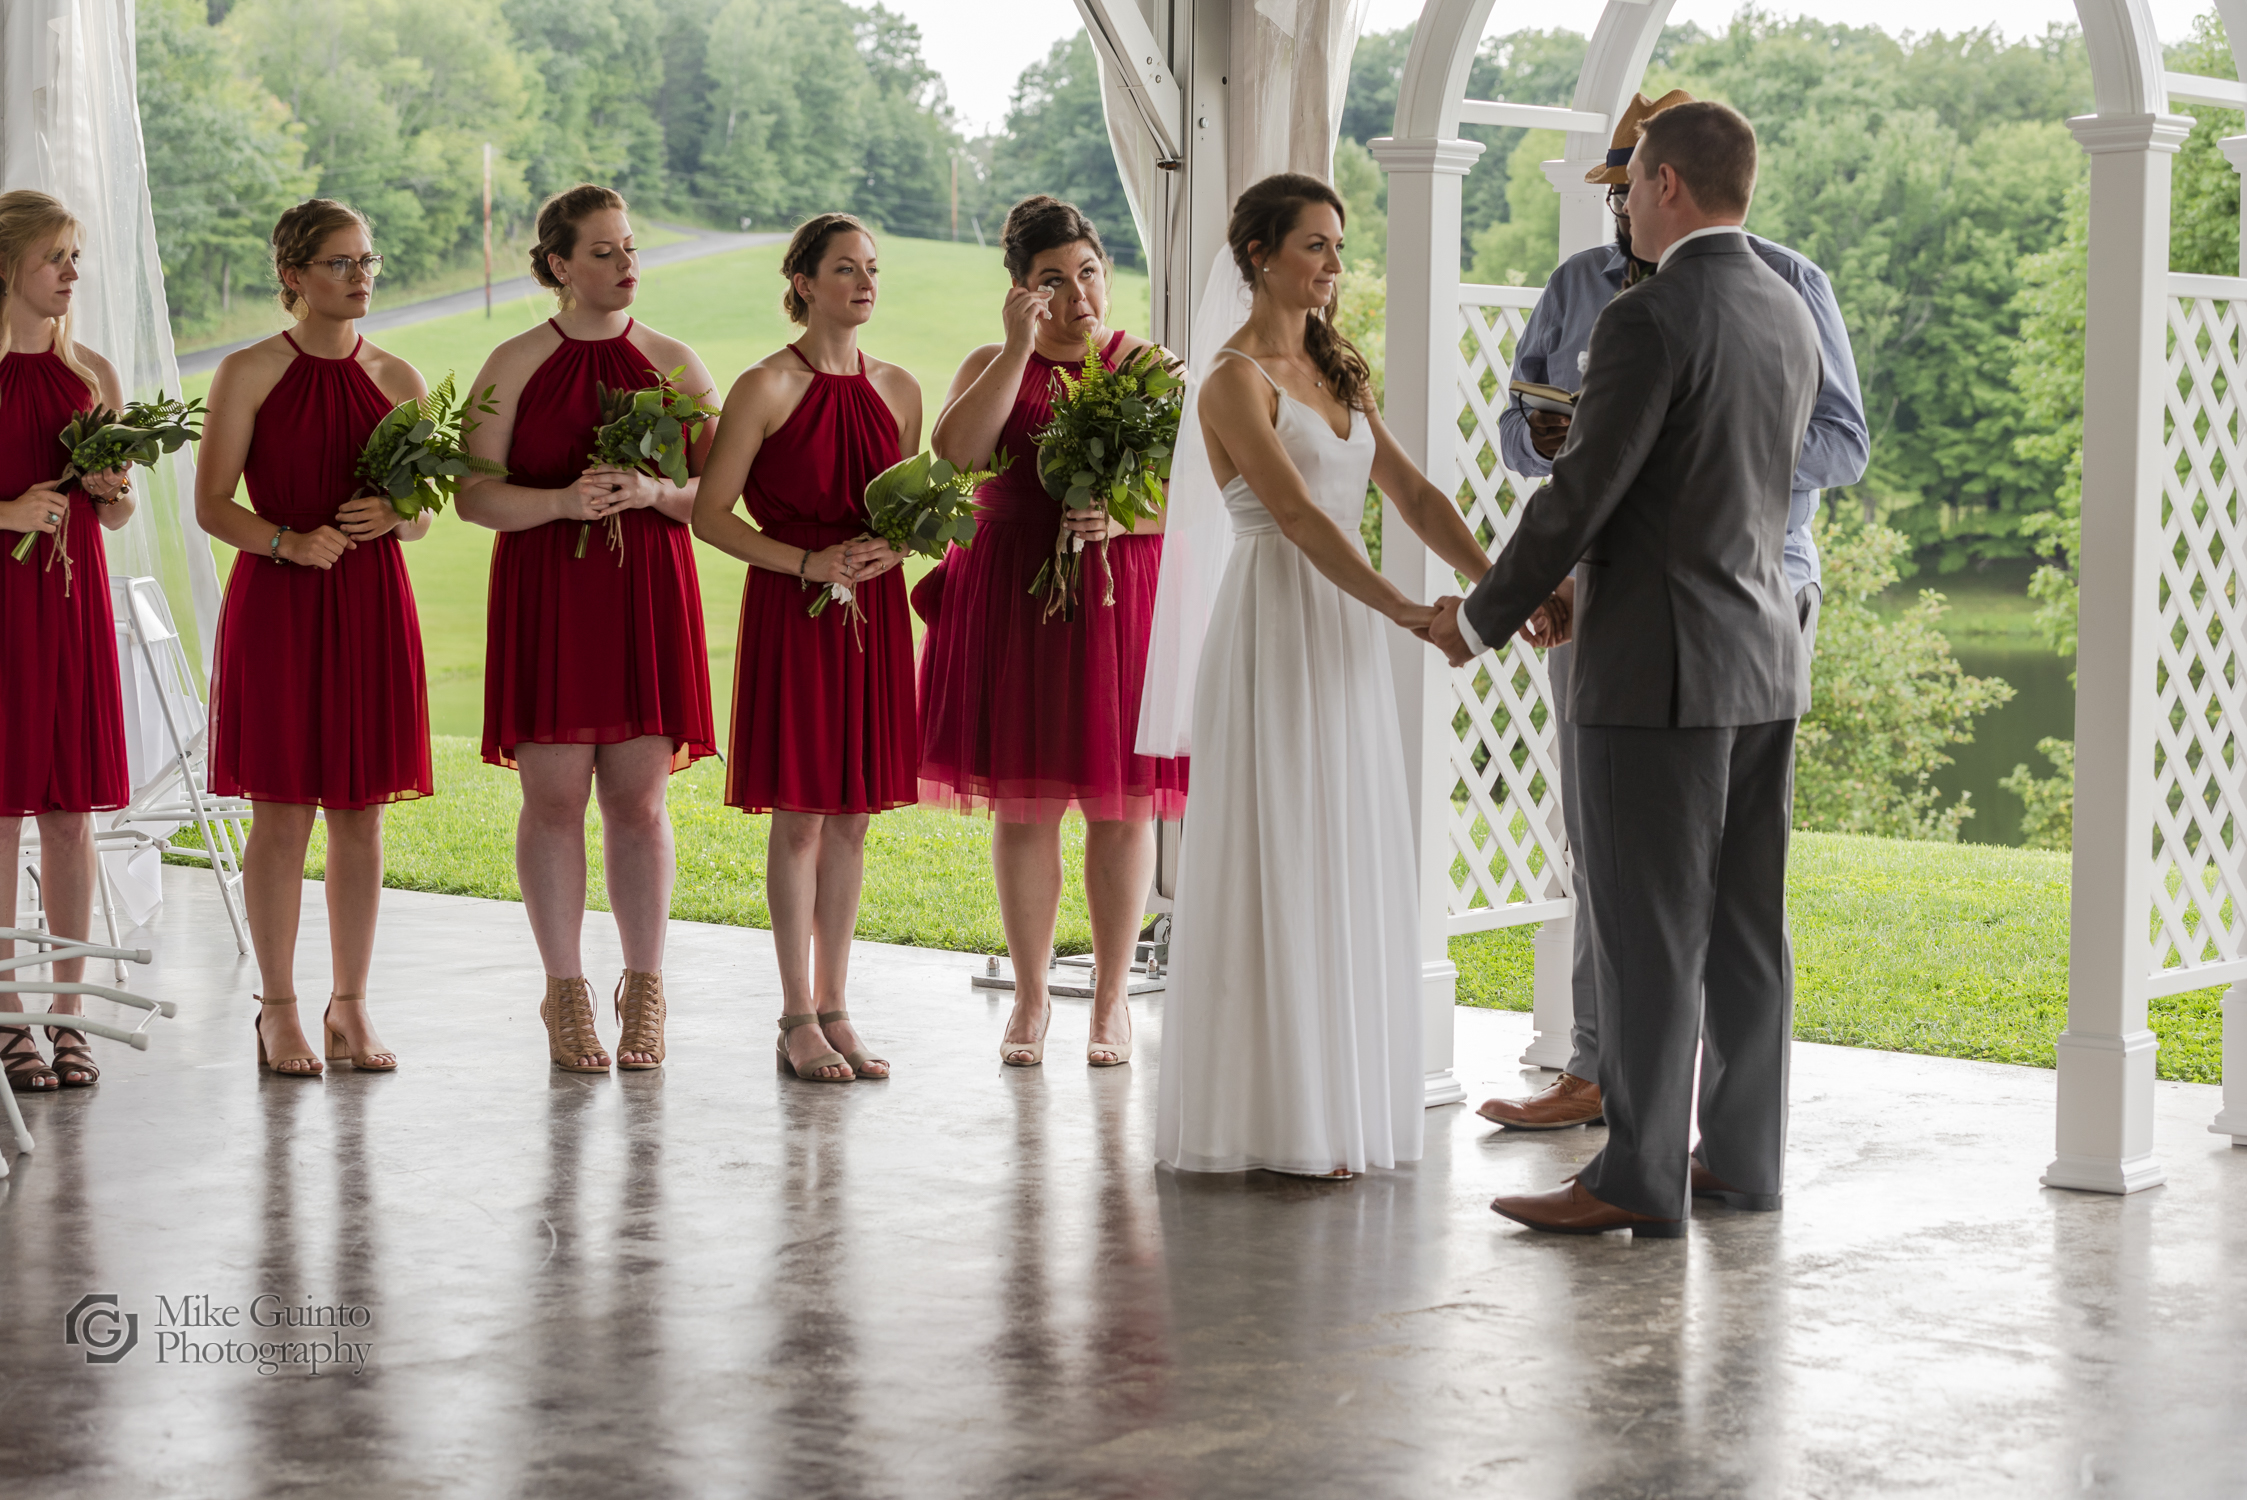 20180811_Clancy-Brown-Wedding_309.jpg